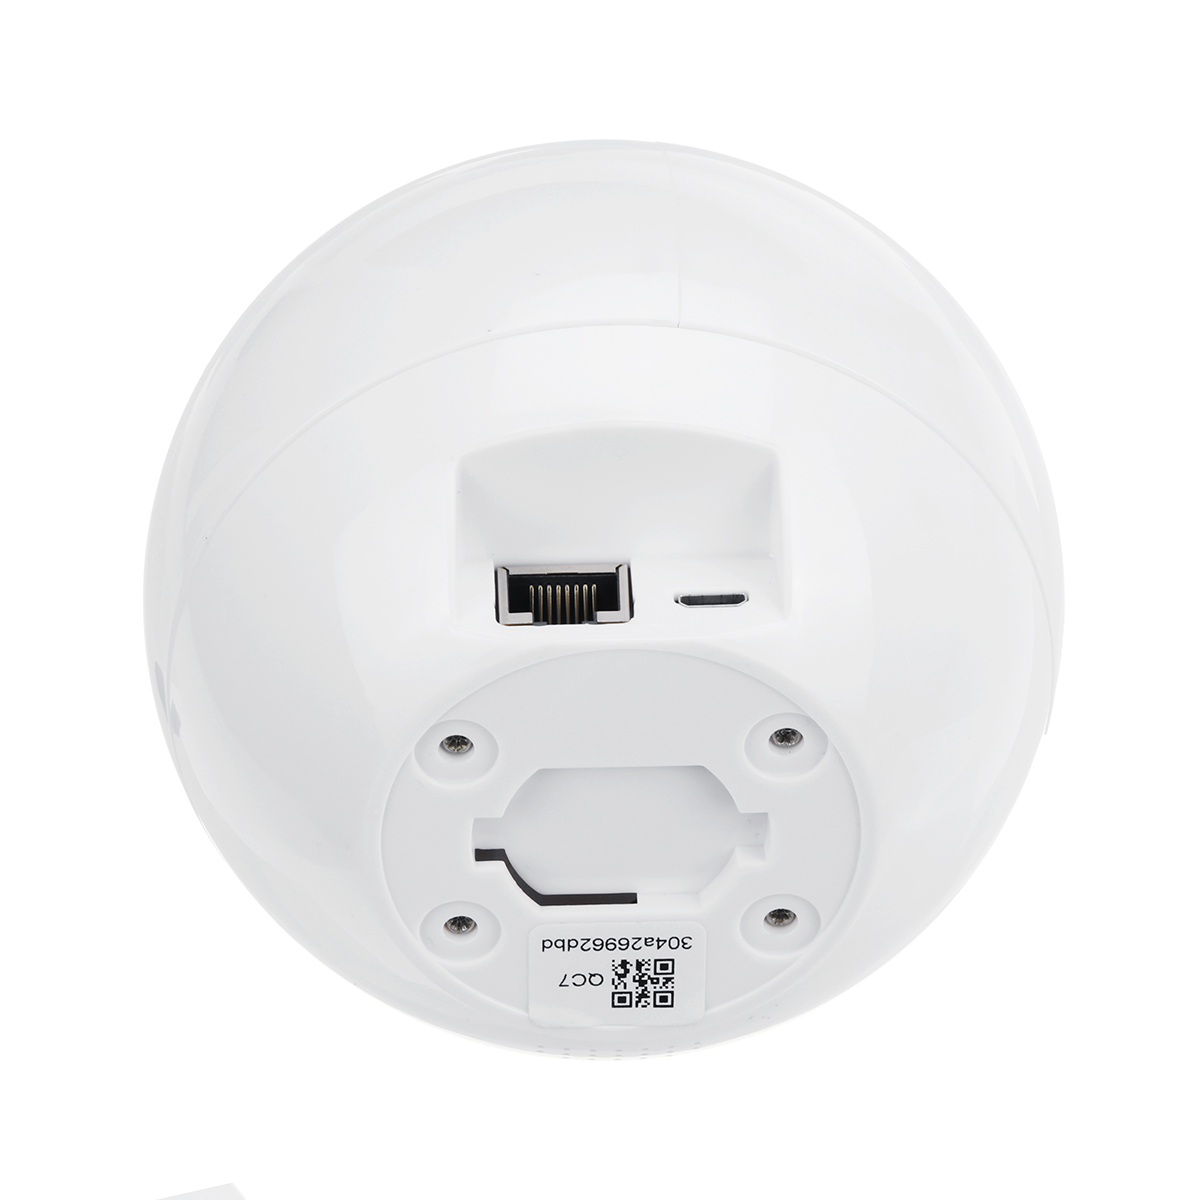 Doodle APP 1080P 2mp wireless IP camera space ball design cradle night vision function 355° rotation 90° rotation